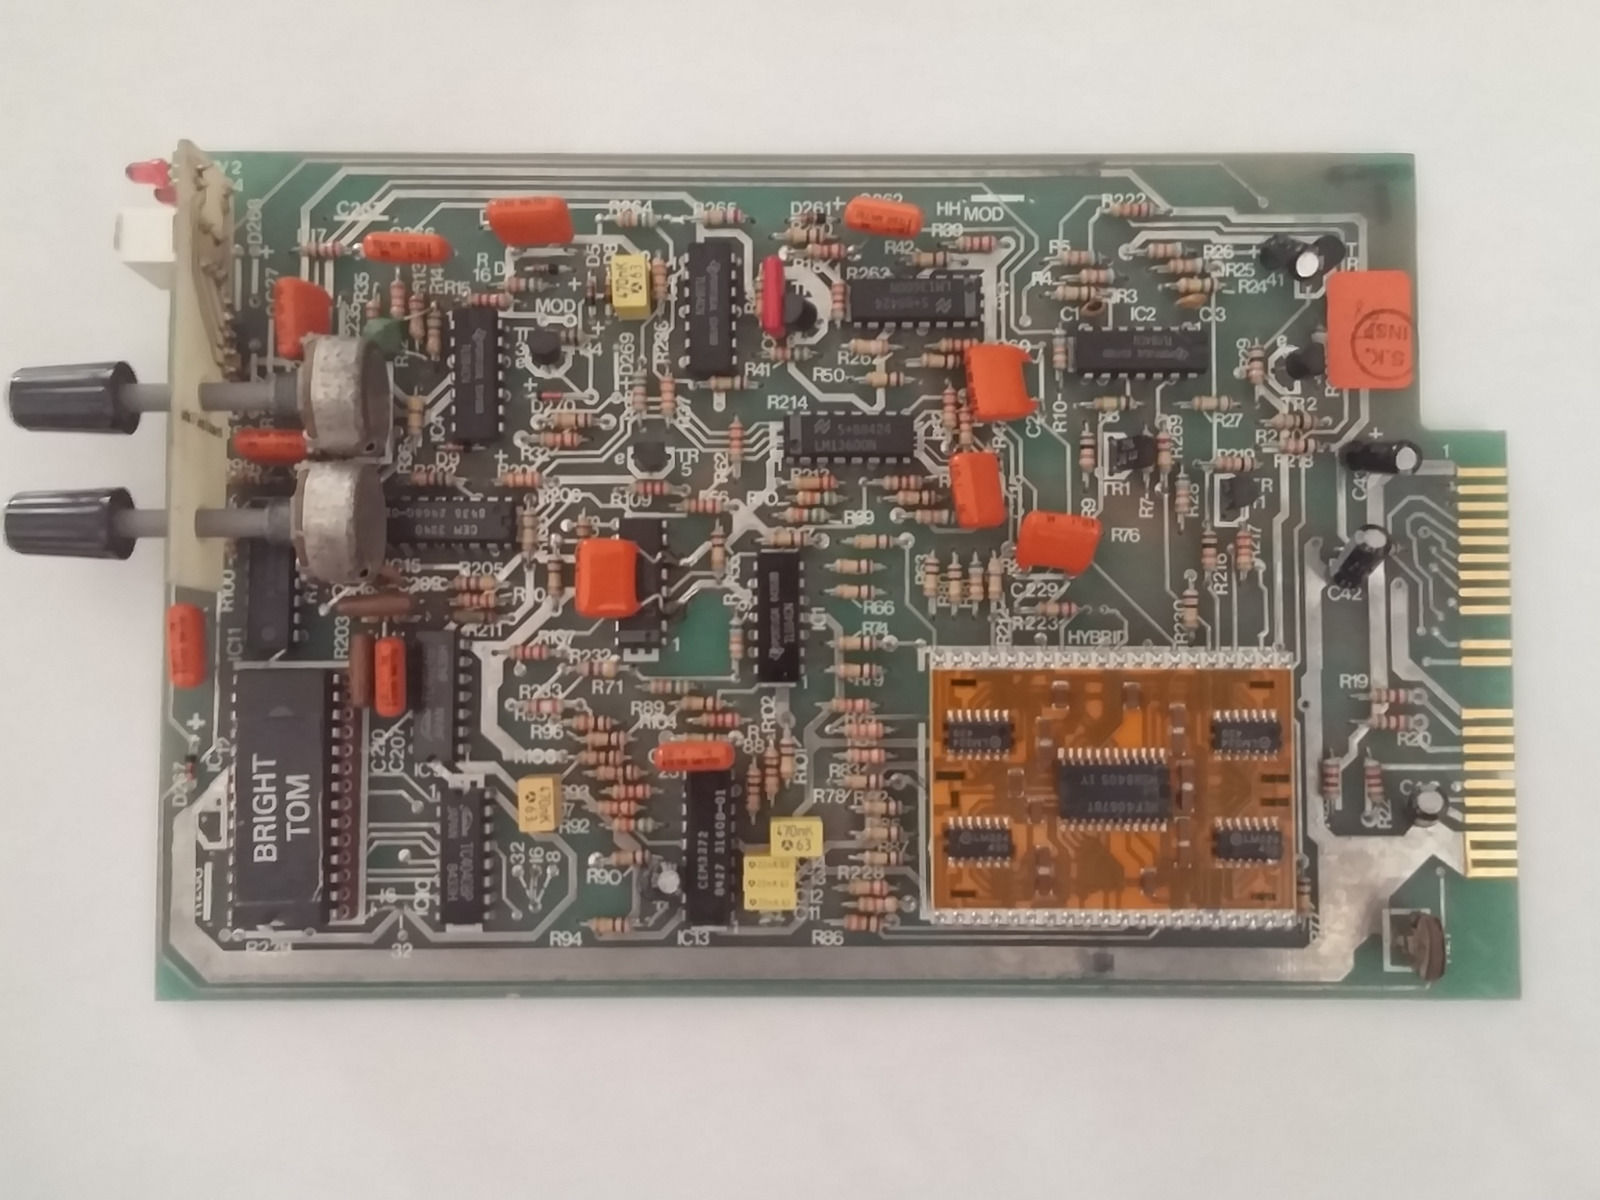 Matrixsynth Vintage Simmons Drums Sds 7 Modules Make Your Own Circuit Board Images Some Pics Of The Internal Boards